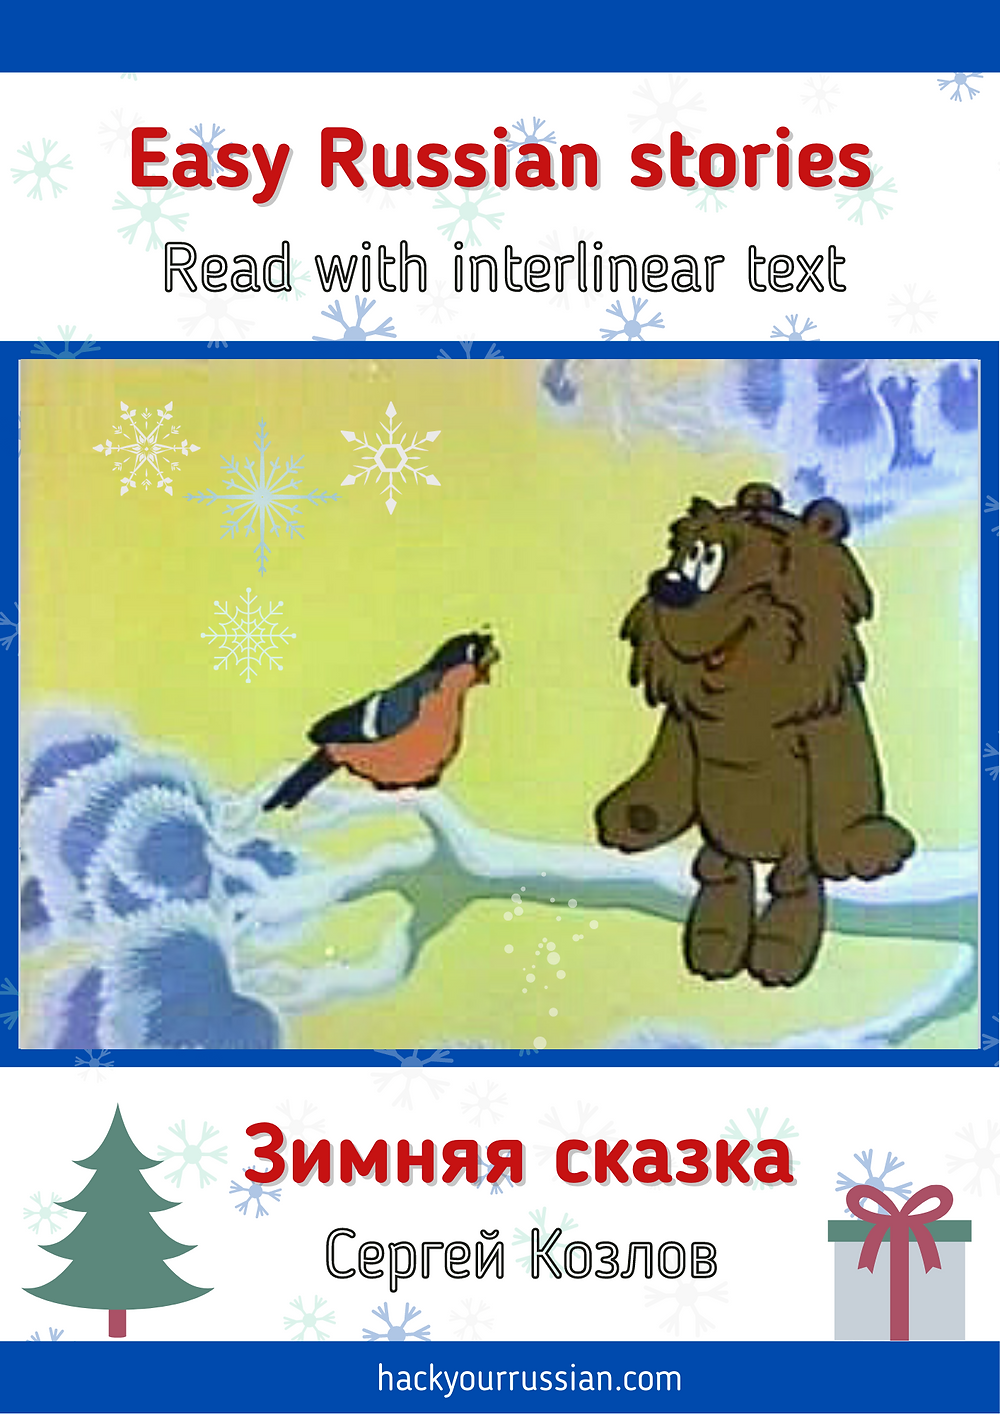 Easy Russian story - Interlinear text